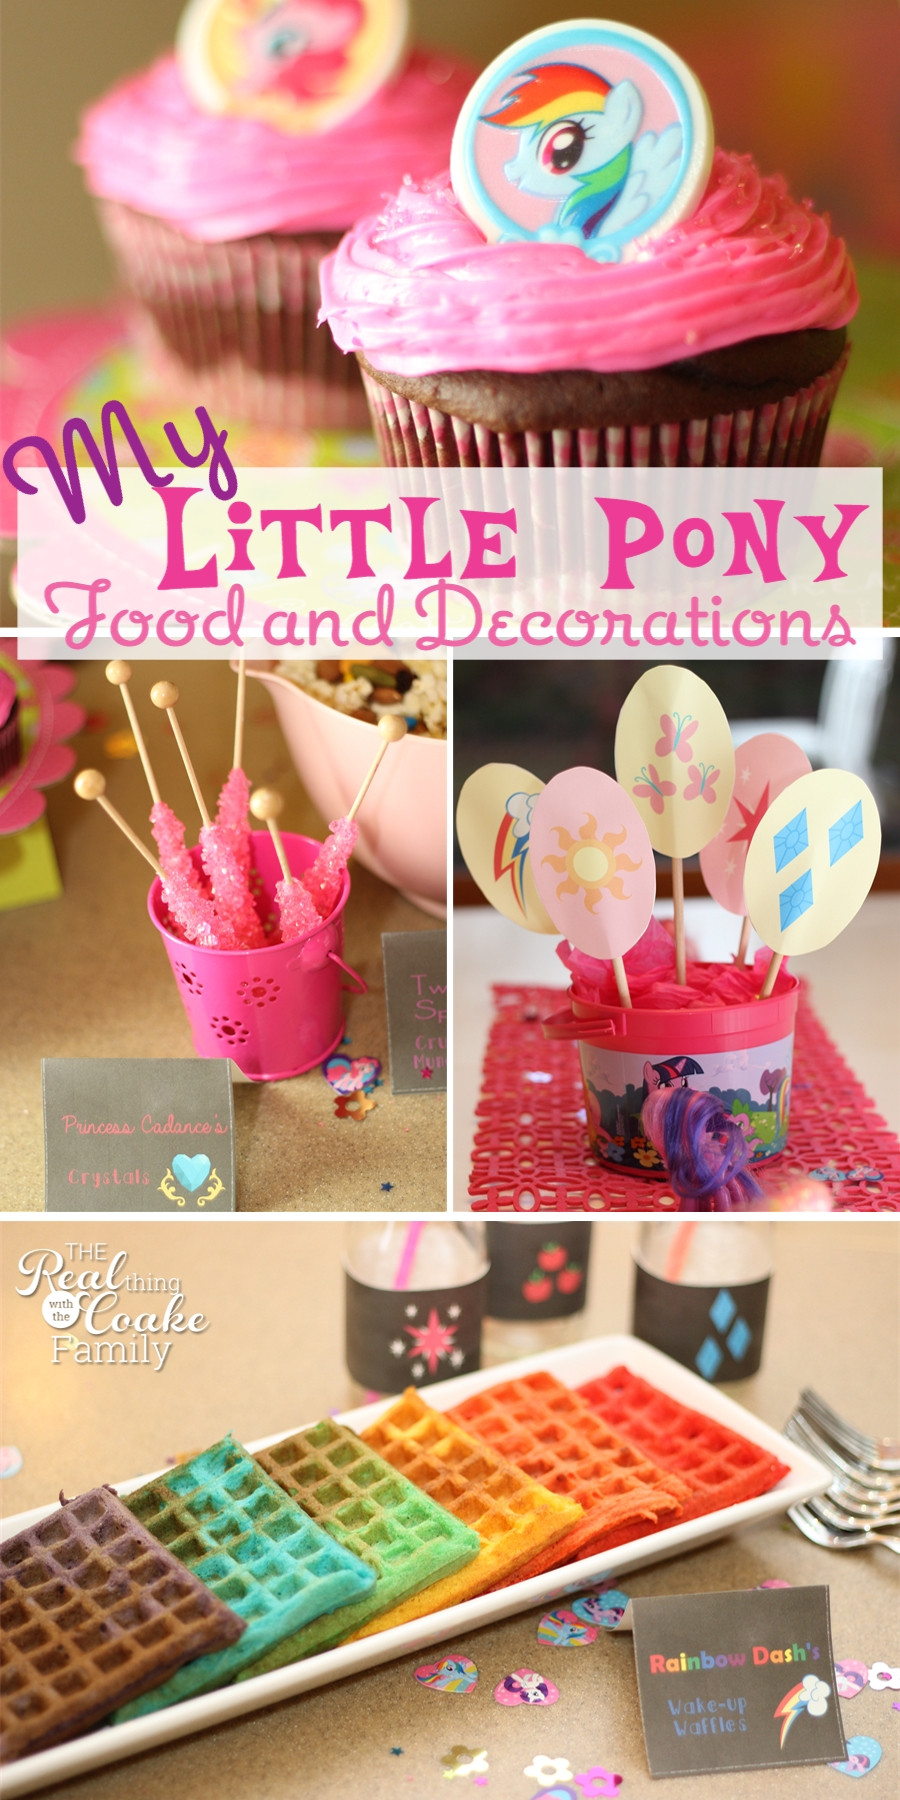 Best ideas about My Little Pony Birthday Decorations . Save or Pin My Little Pony Birthday Party Food and Decorating Ideas Now.